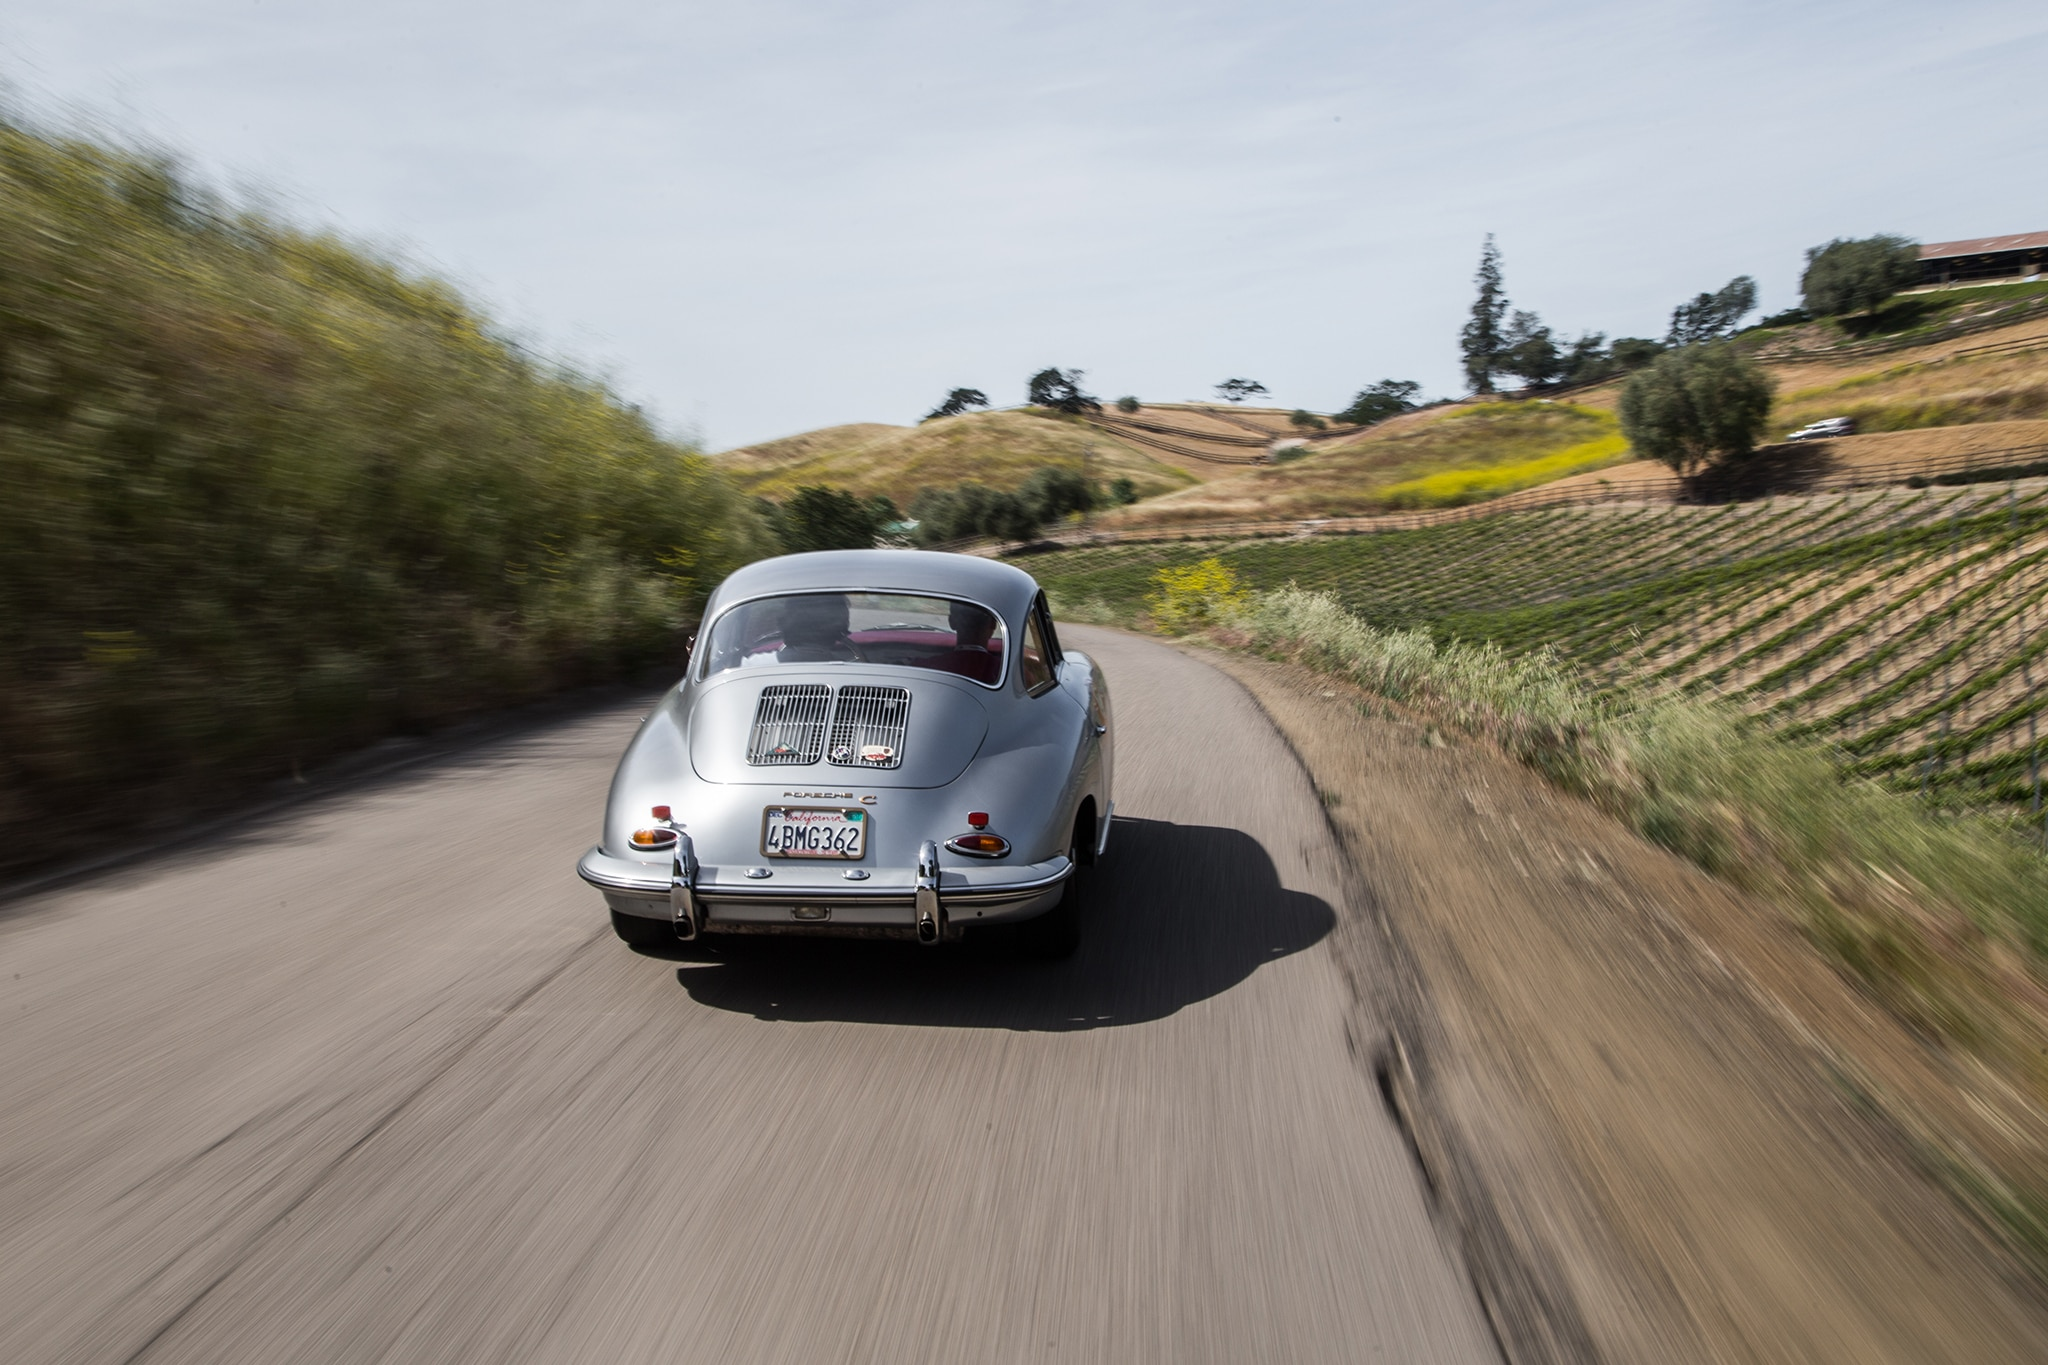 1964 Porsche 356 C Rear View In Motion 01